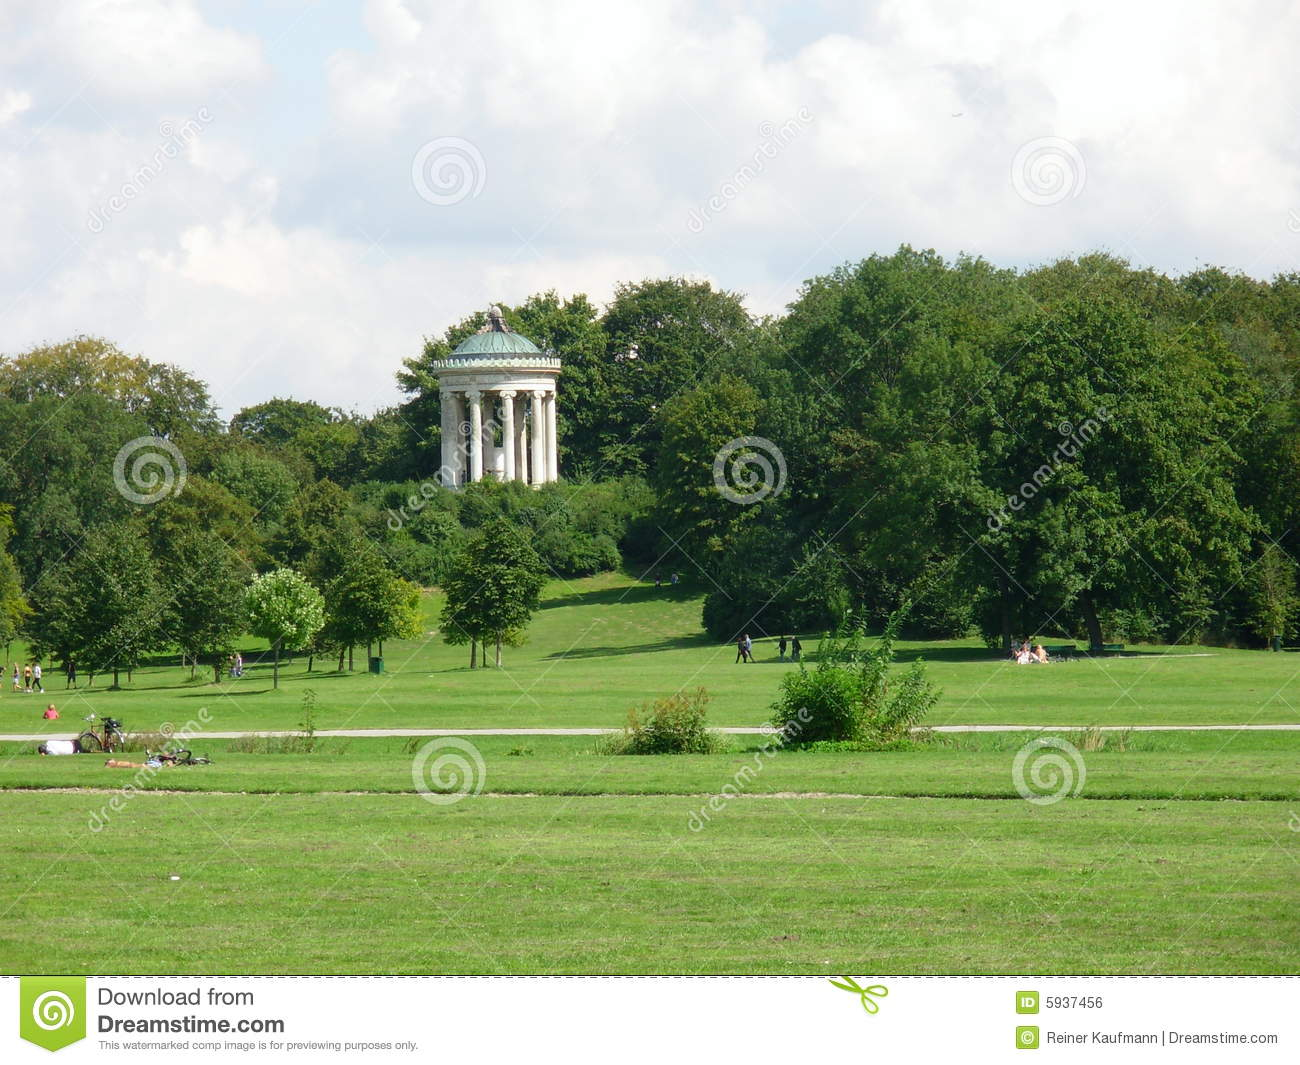 englischer garten in munich royalty free stock image image 5937456. Black Bedroom Furniture Sets. Home Design Ideas